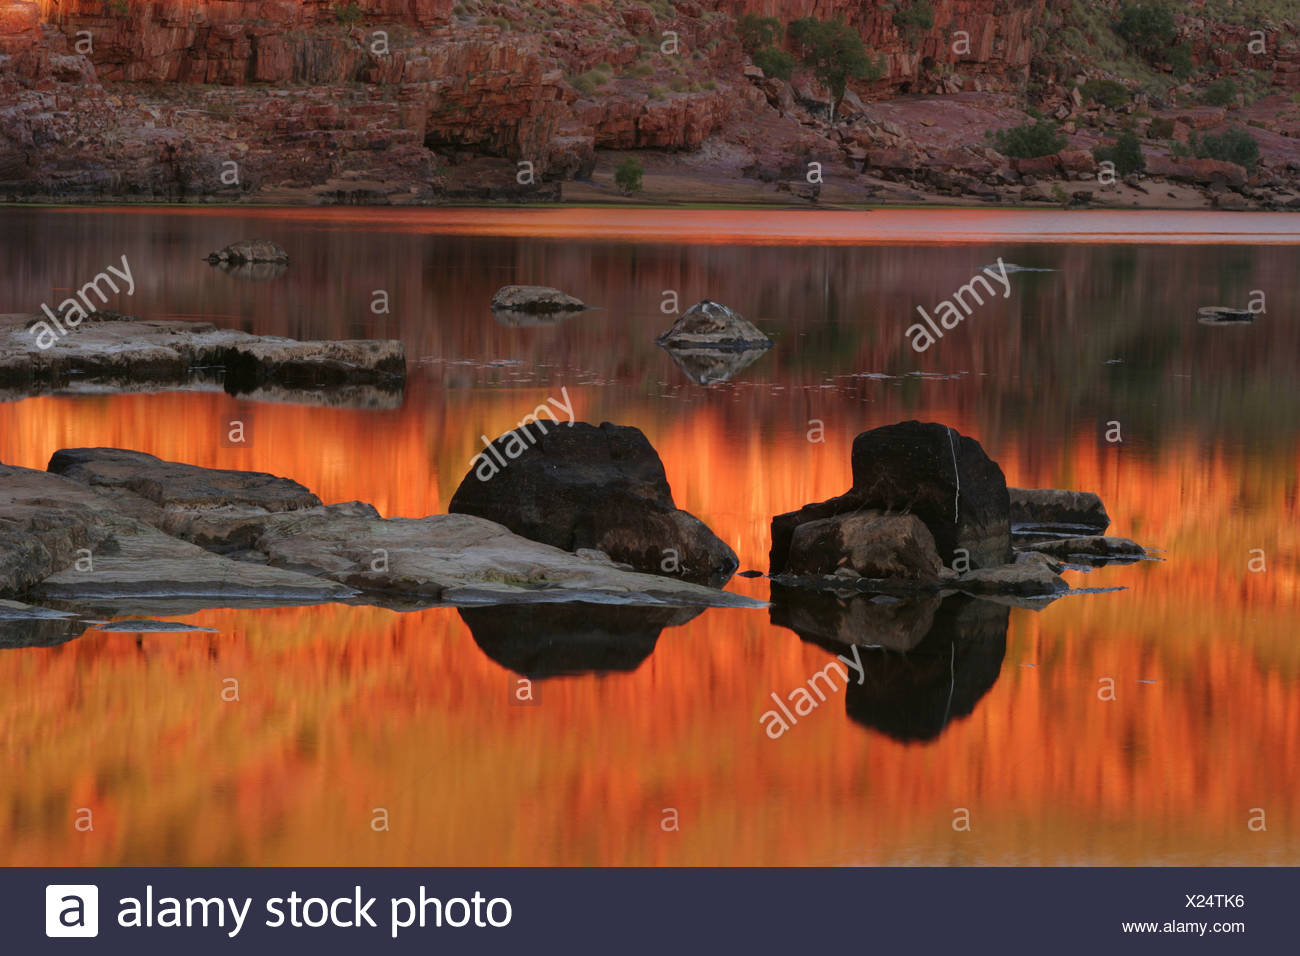 Dimond Gorge, Mornington Sanctuary, Kimberley region, Western Australia - Stock Image